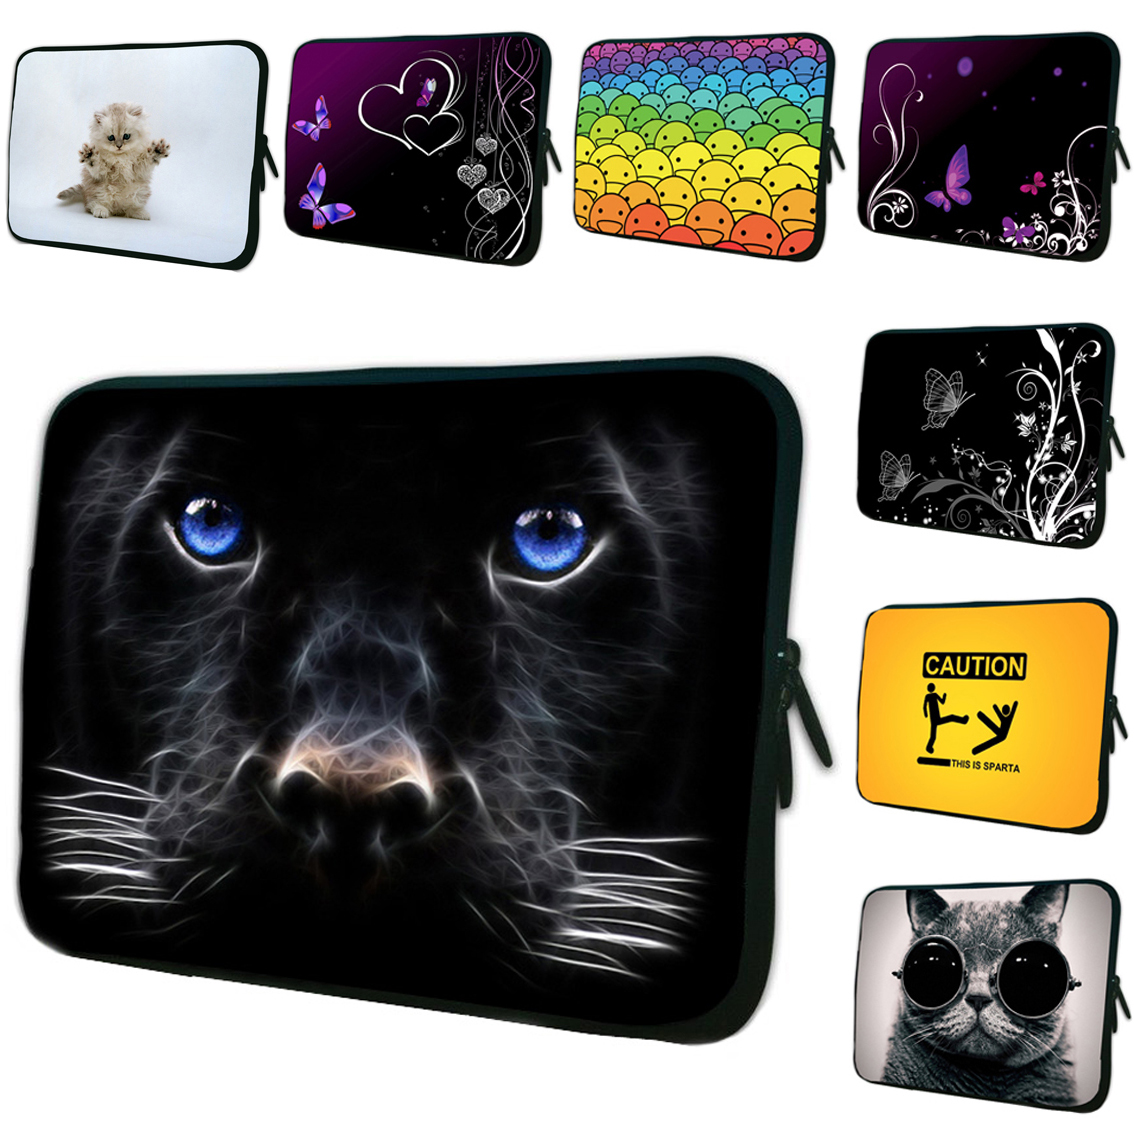 Boy Girls Cool Neoprene Laptop Sleeve Bags 7 inch 10 12 13 14 15 17 Notebook Computer PC Zipper Cover Cases Computer Accessories